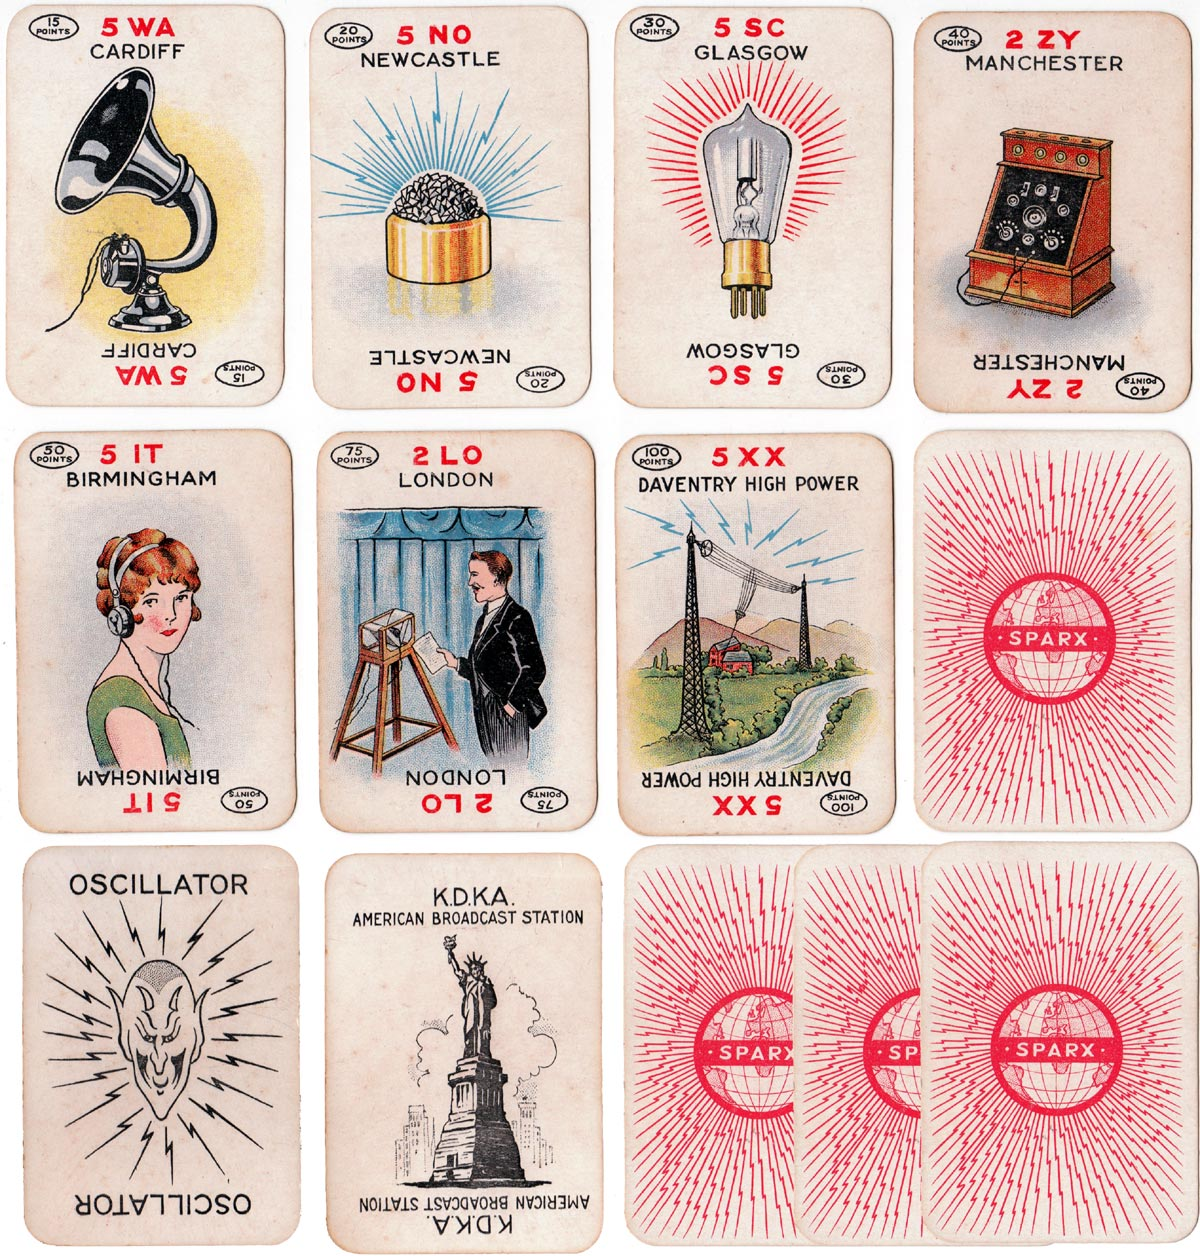 'Sparx' card game, or 'Listening In', published by Chad Valley Games, c.1910